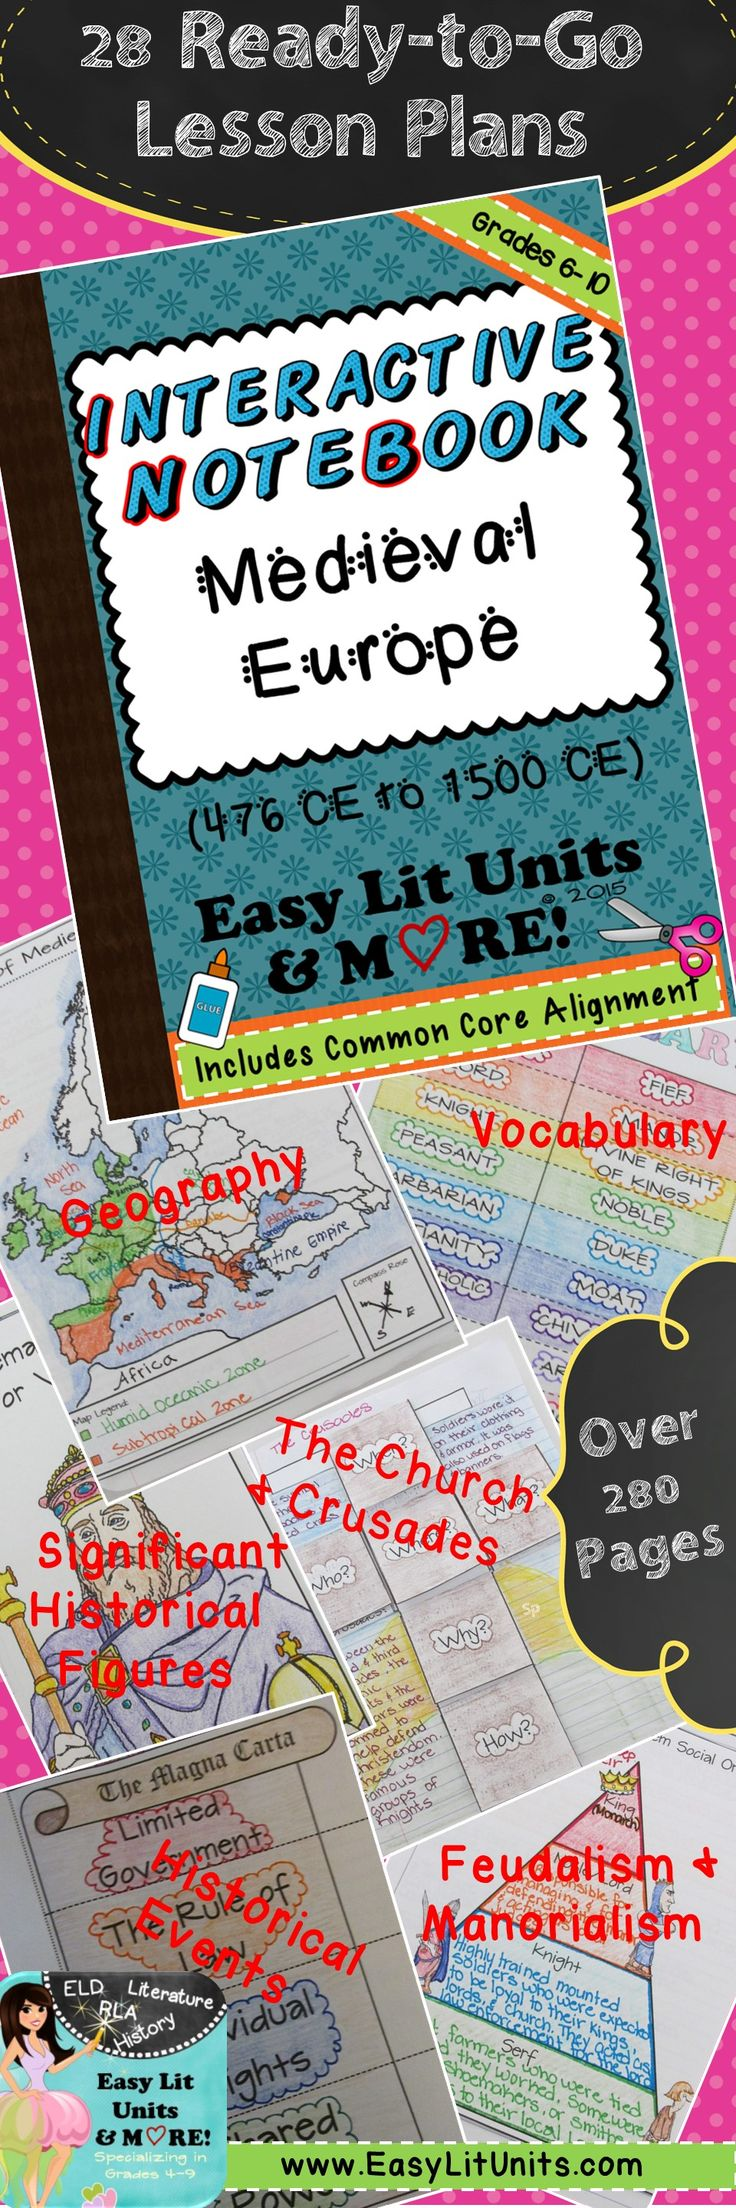 Ready to Teach COMMON CORE Interactive Student Notebook Lessons for Medieval Medieval Europe Grades 5-10. Over 28 lessons & 284 pages! Ideal way to enhance your world history curriculum! www.EasyLitUnits.com